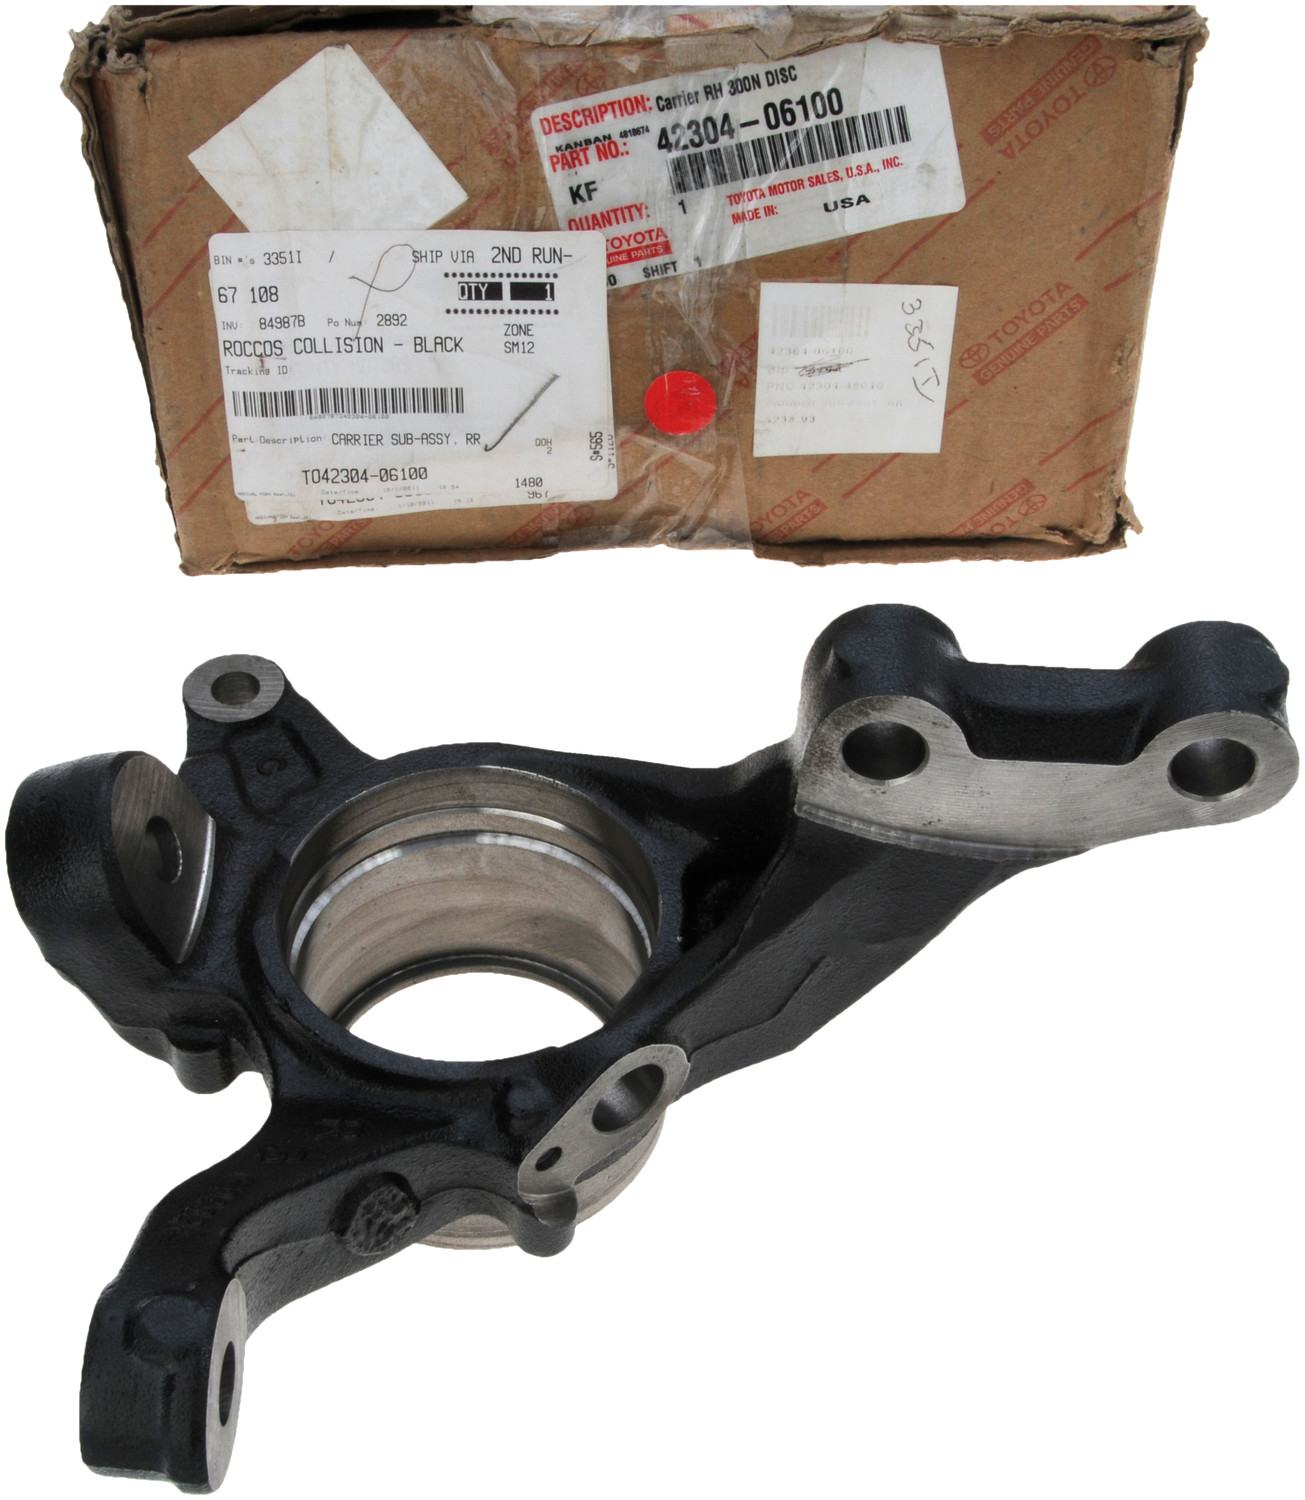 Genuine Oem Rear Suspension Mounting Parts For 1990 Toyota: TOYOTA OEM Rear Suspension-Knuckle Spindle 4230406100